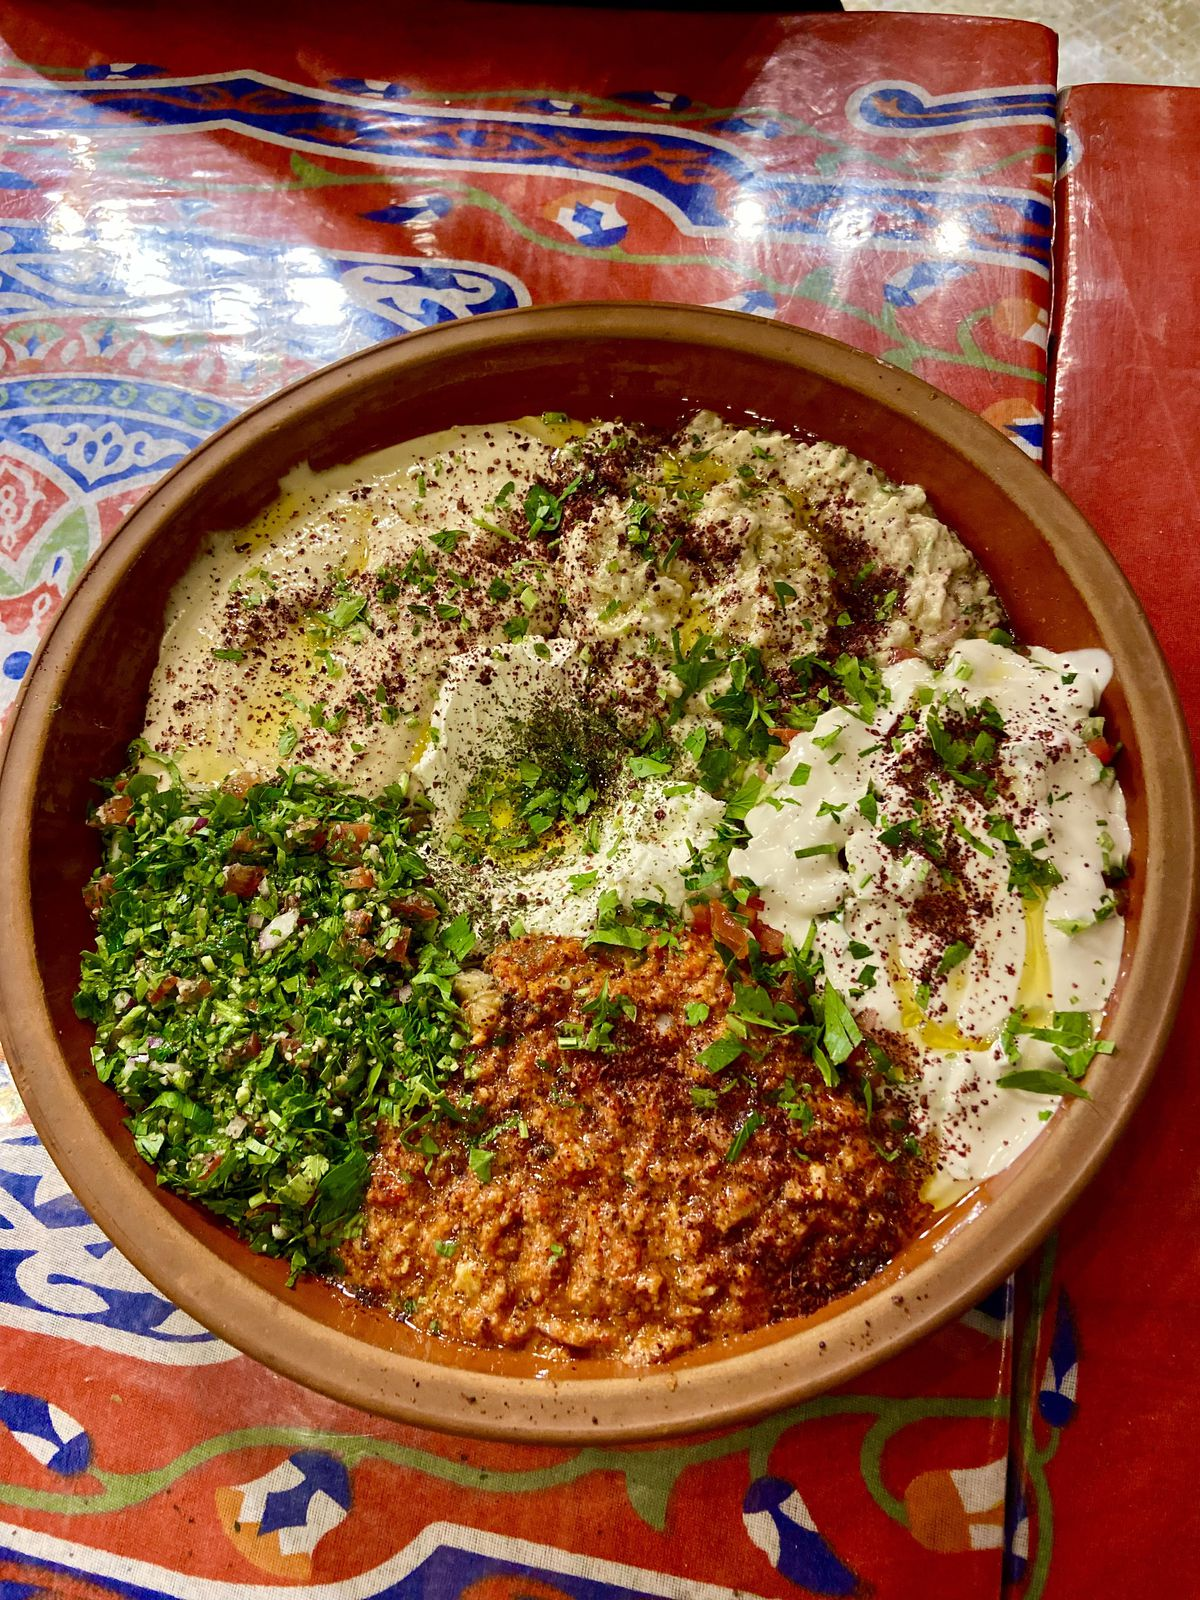 The colorful mezze platter of hummus, baba ganoush, muhammarah, tahini, tabouleh, labnedusted with sumac is presented in a clay bowl ontop of a colorful tablecloth.